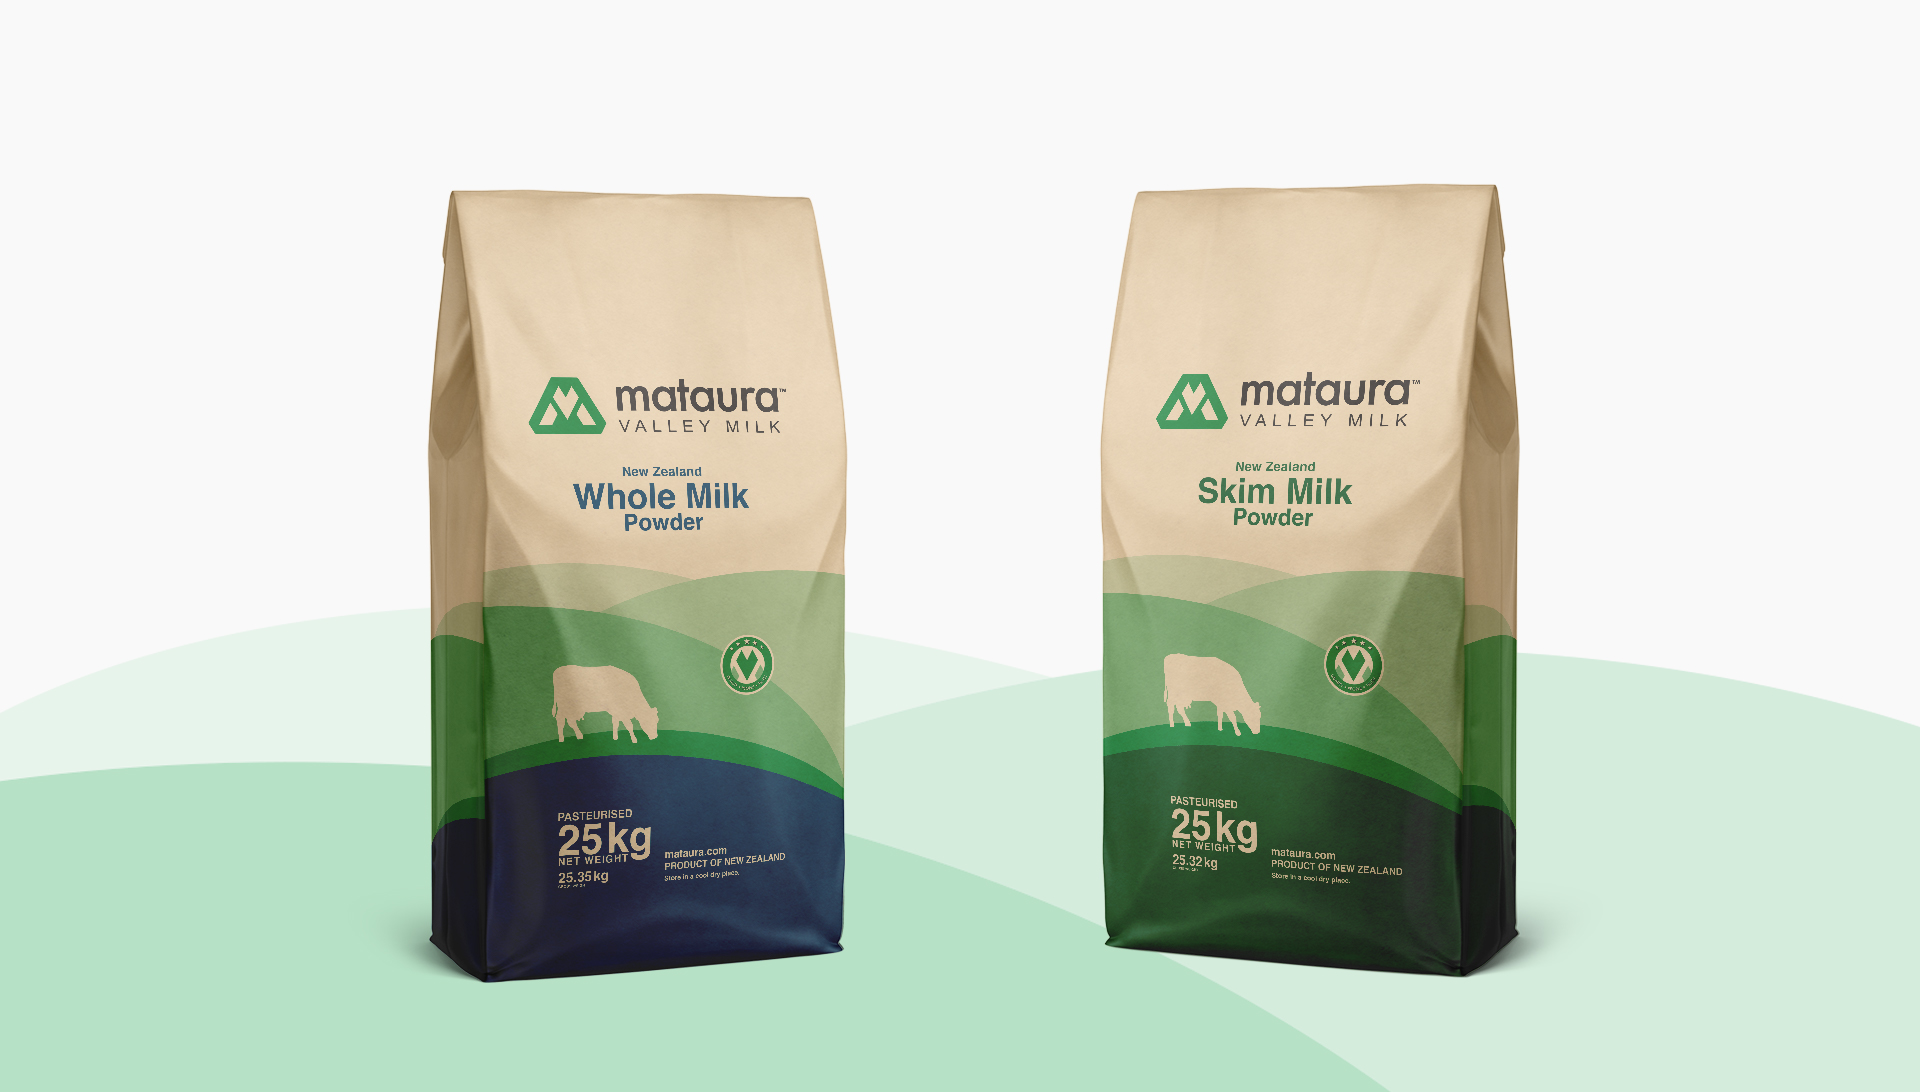 Mataura_valley_milk_packaging_design_branding_elements_product_design_graphic_design_agency_redfire